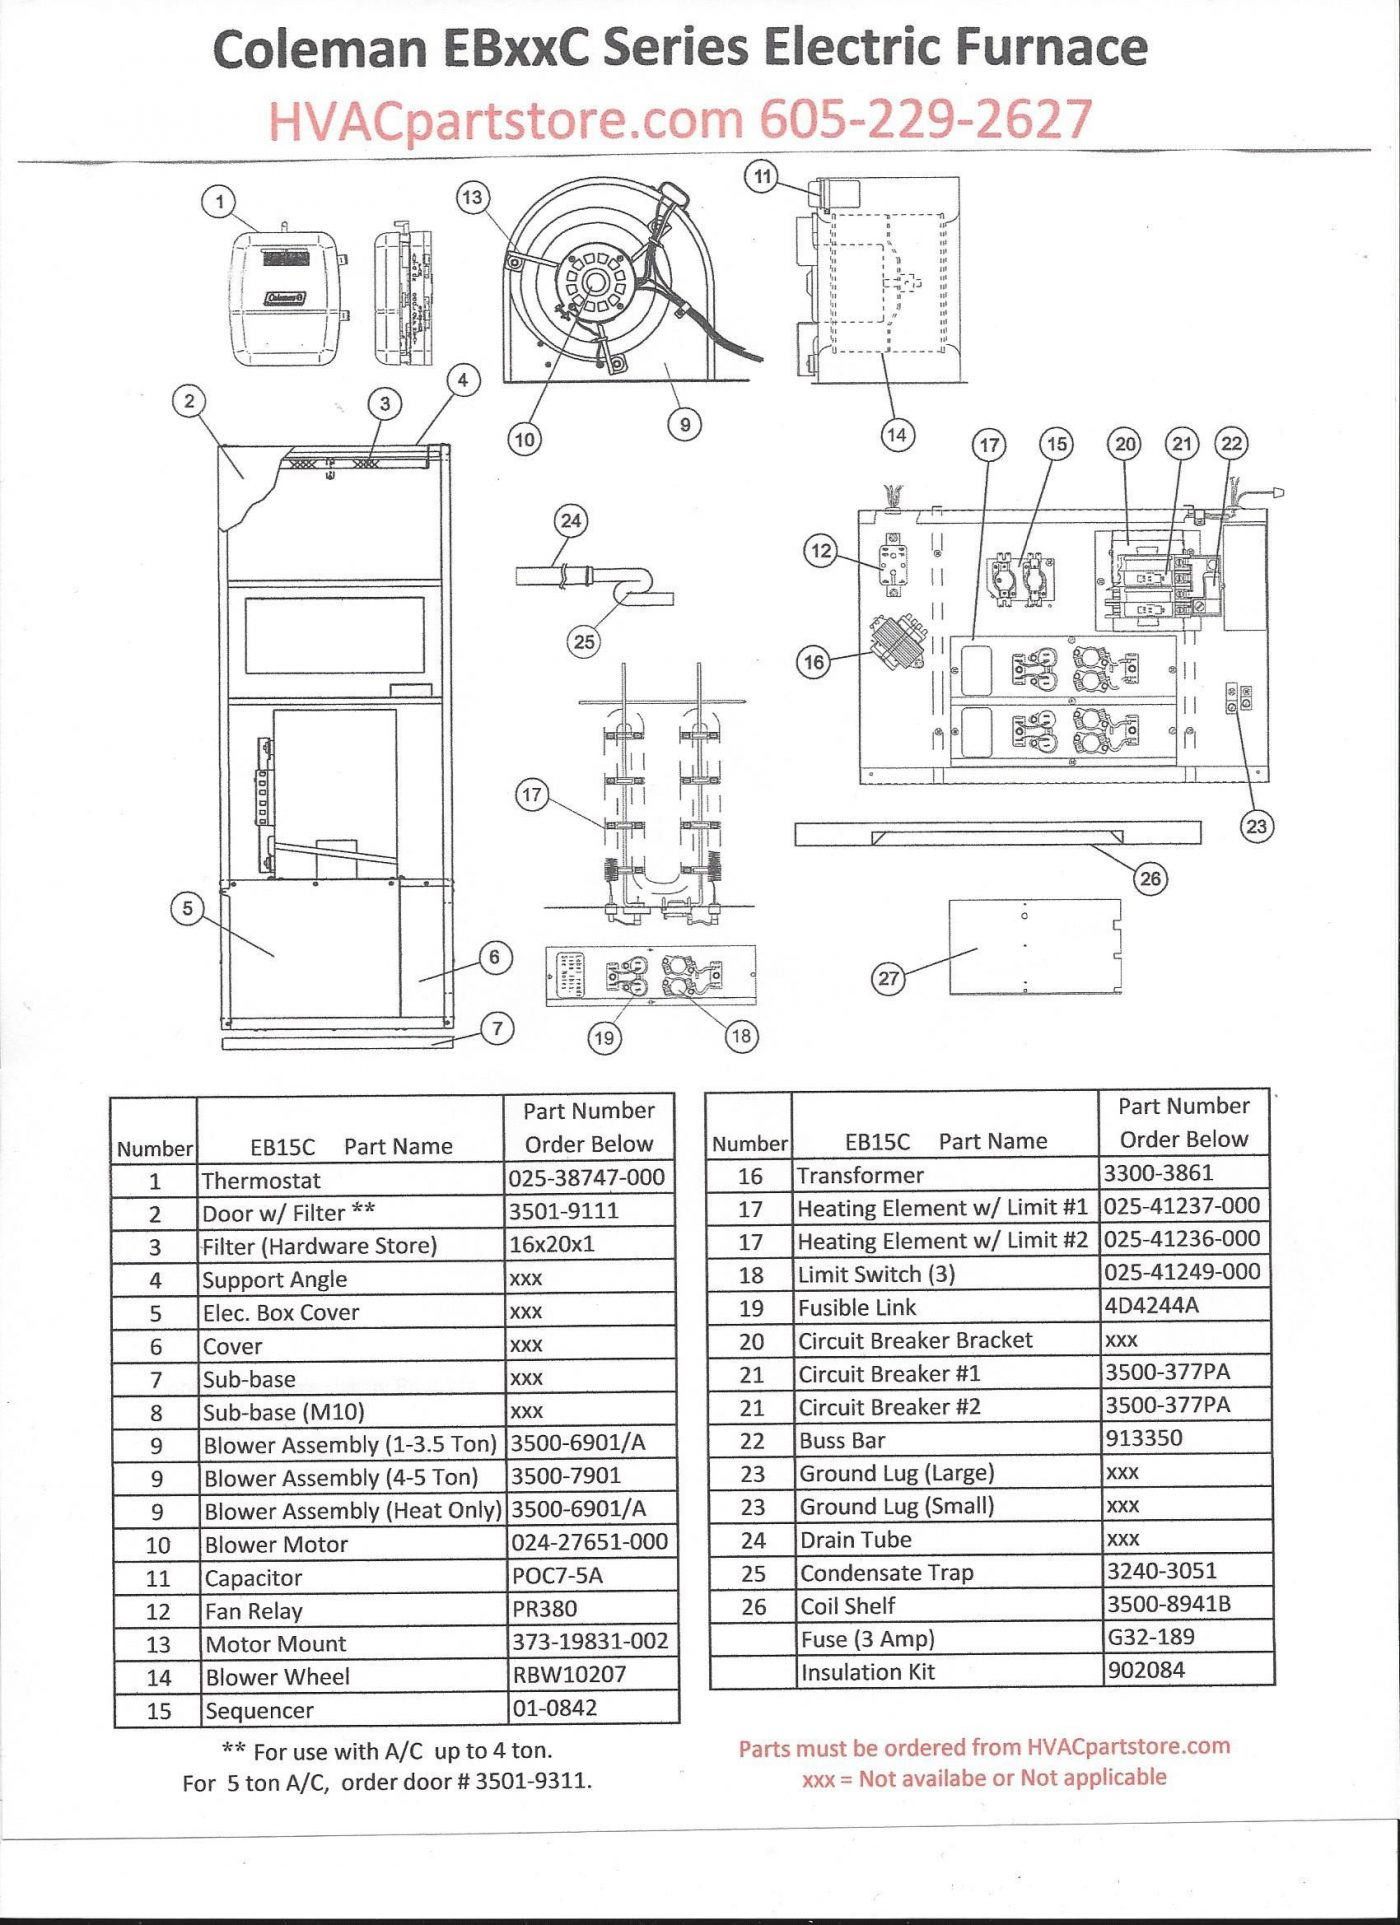 tempstar furnace parts diagram e46 wiring heat pump download collection